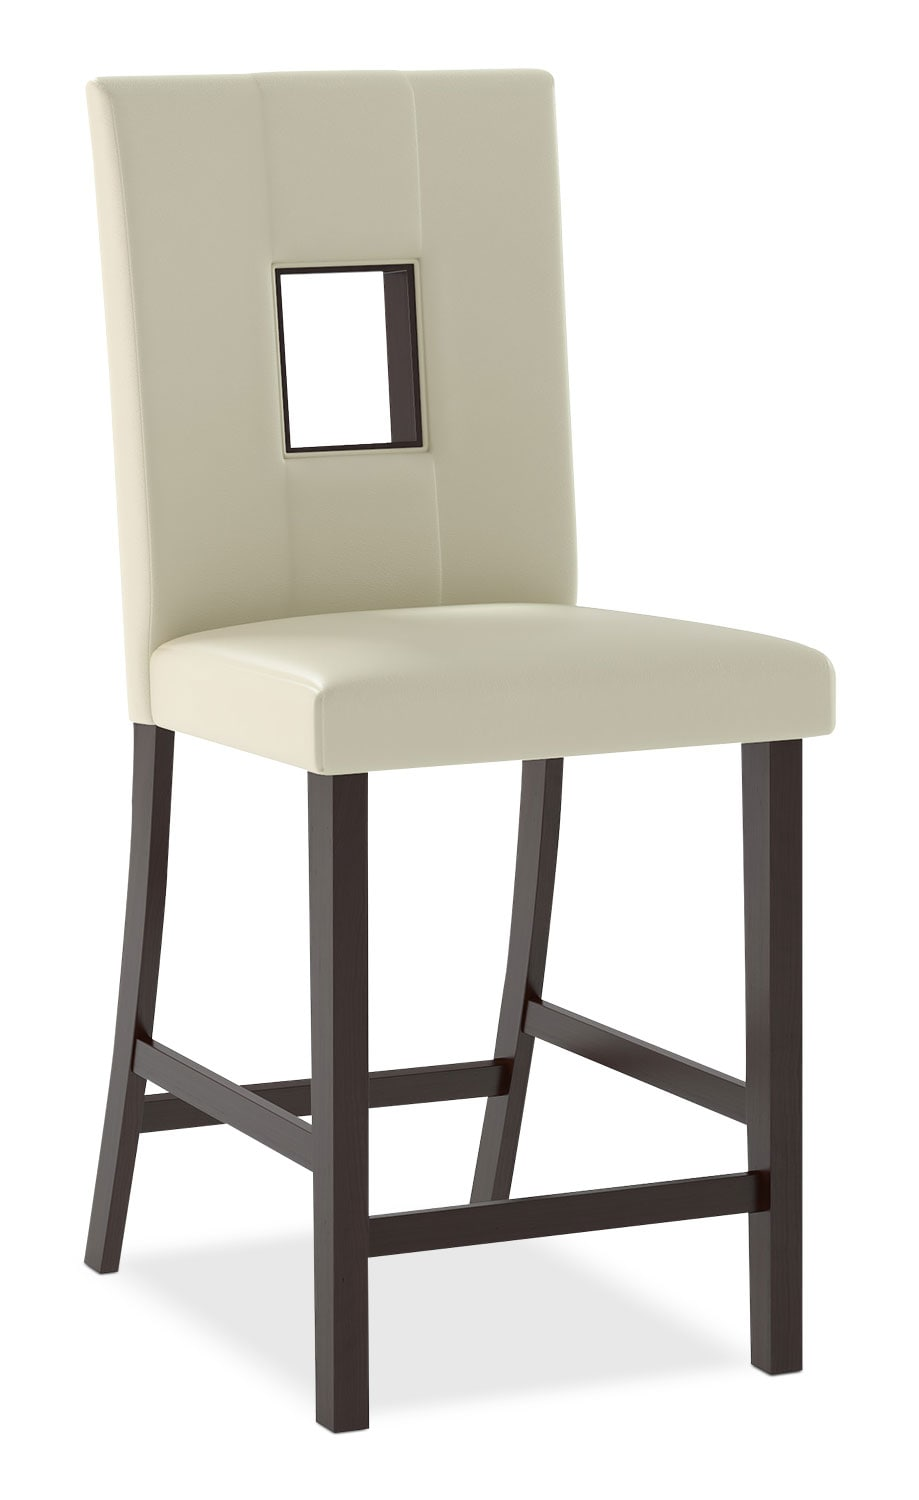 Bistro Counter-Height Dining Chair – White